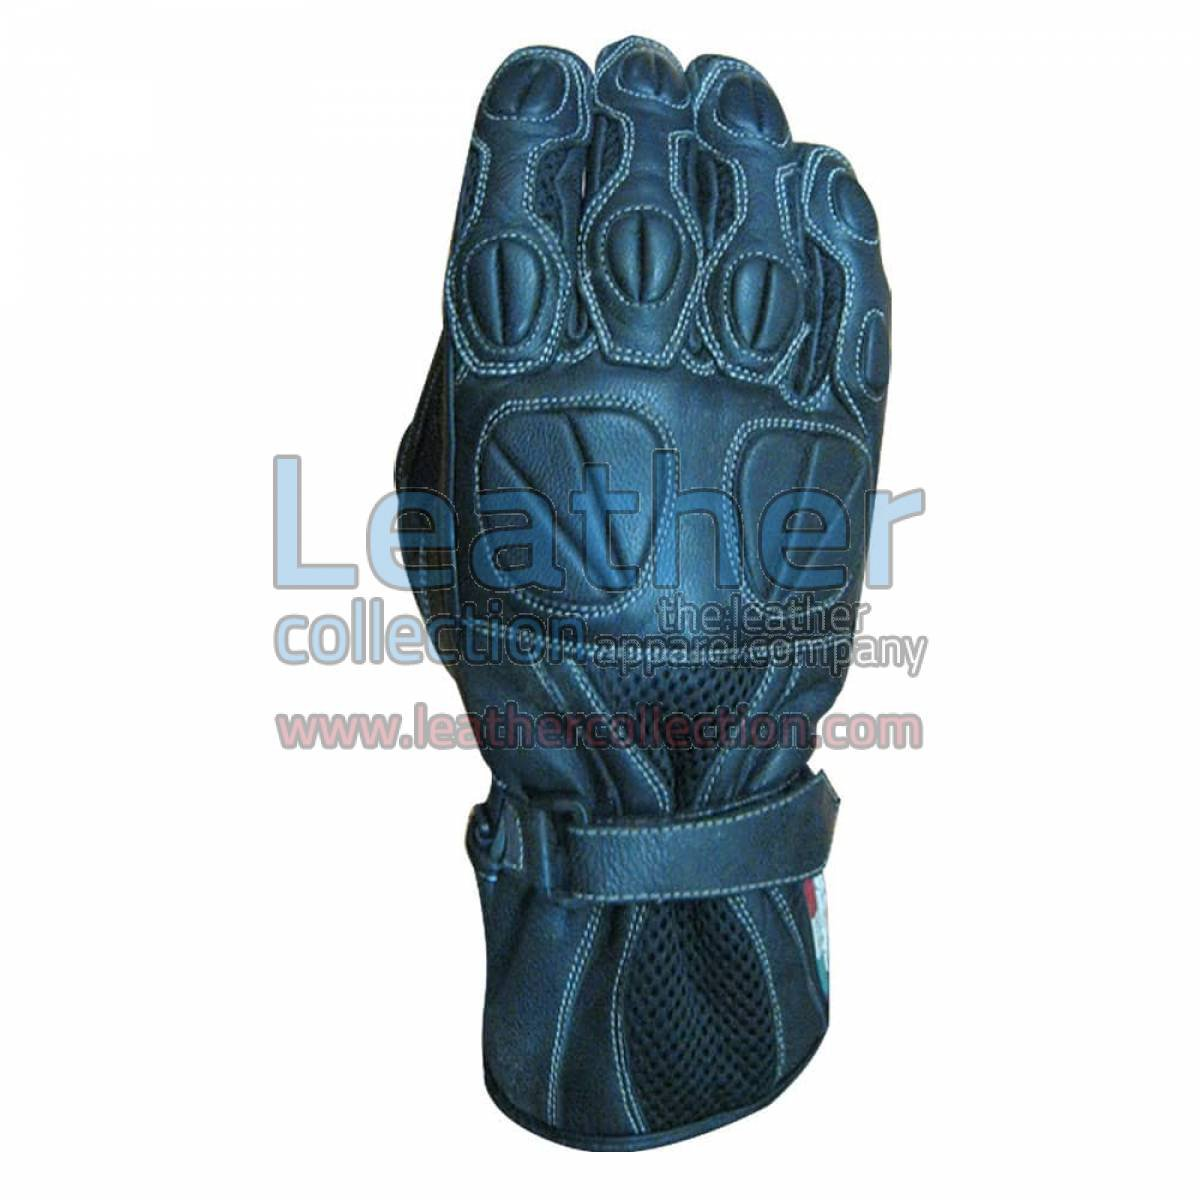 Classic Motorcycle Gloves